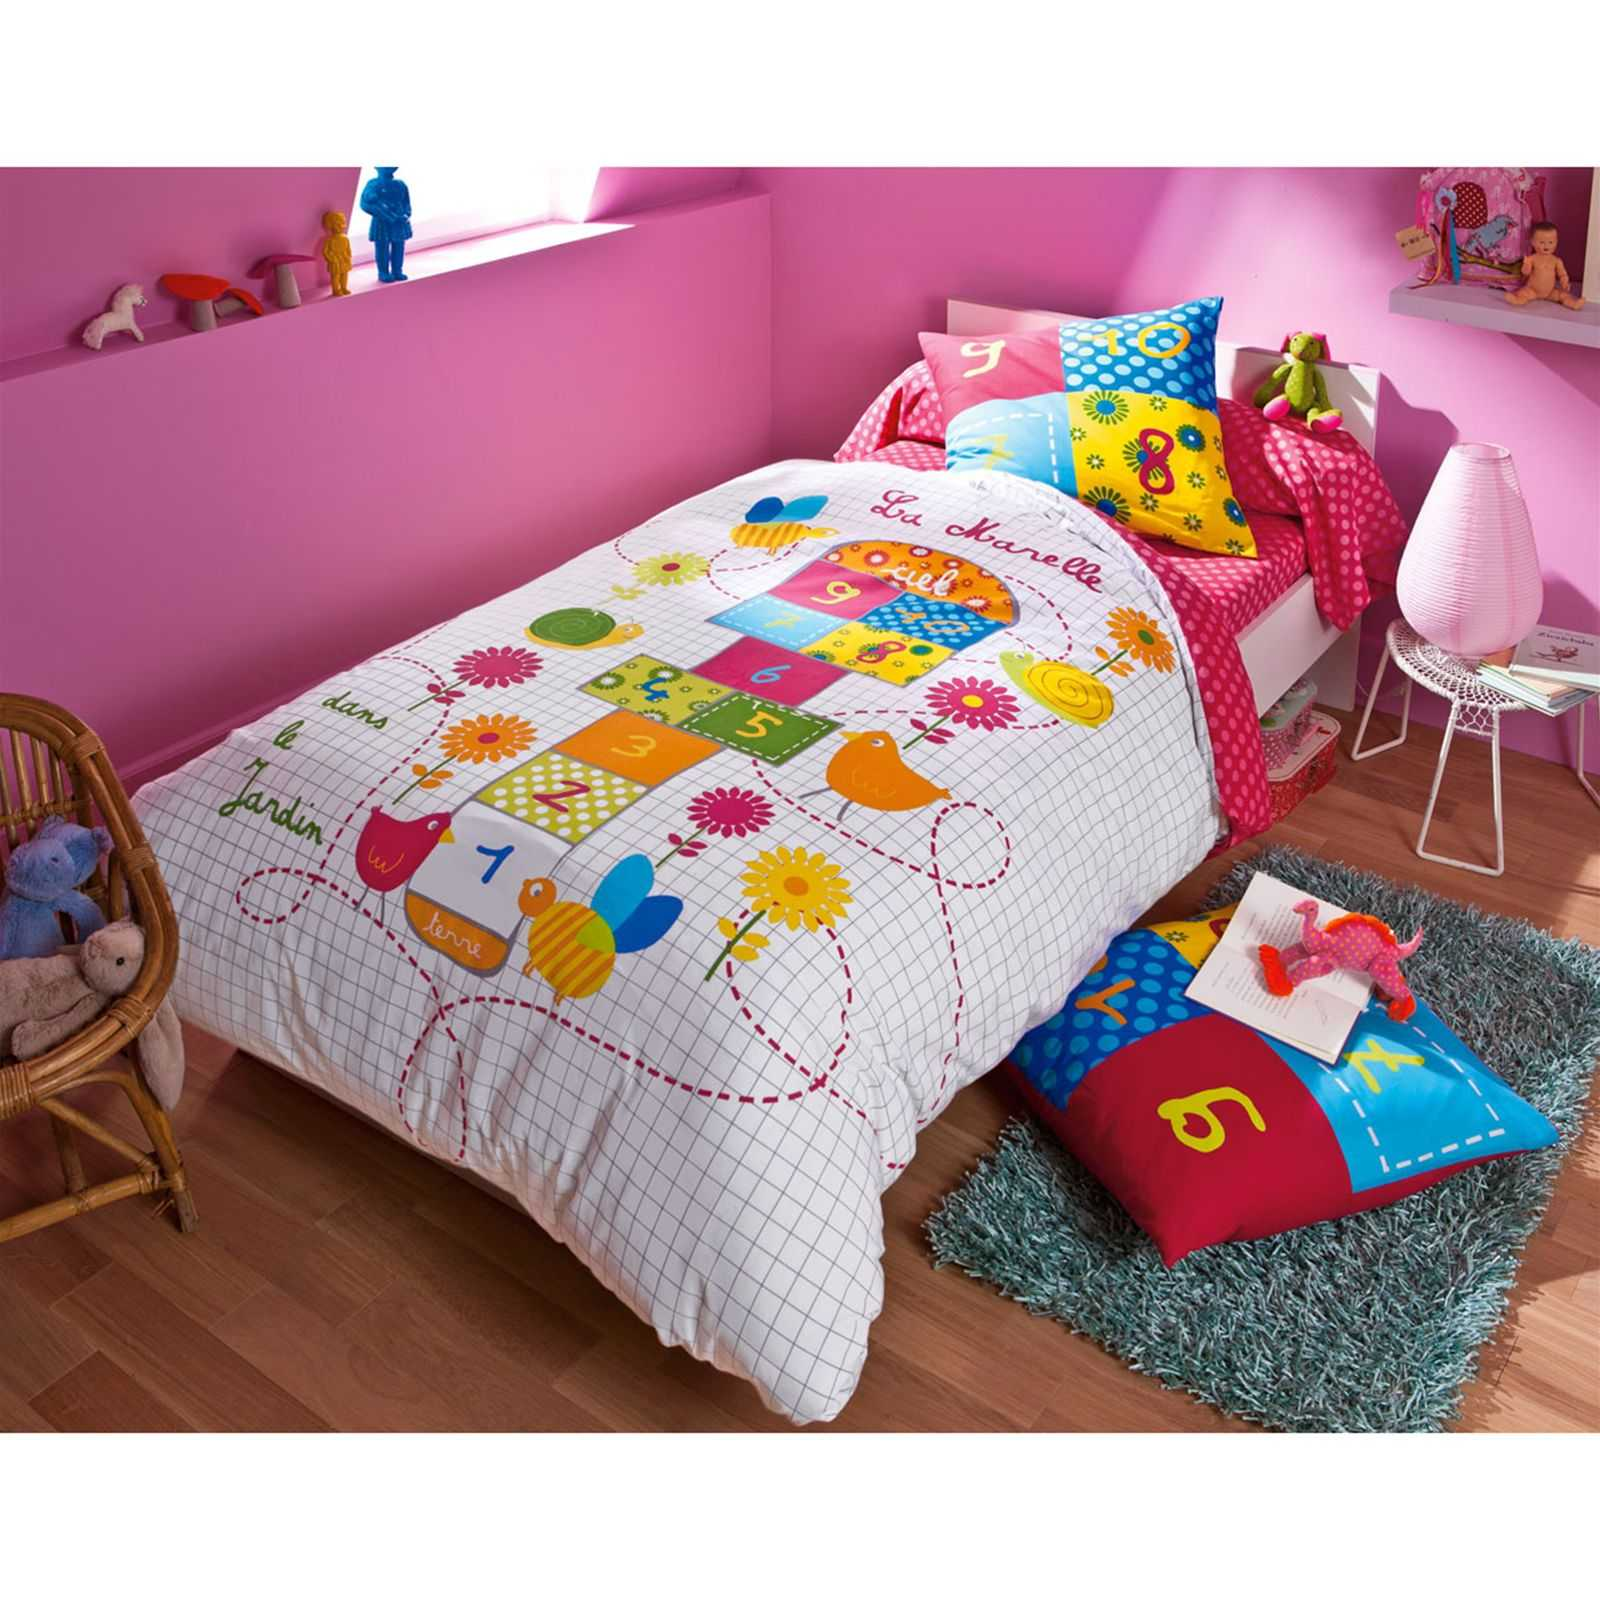 becquet housse de couette enfant marelle multicolore. Black Bedroom Furniture Sets. Home Design Ideas